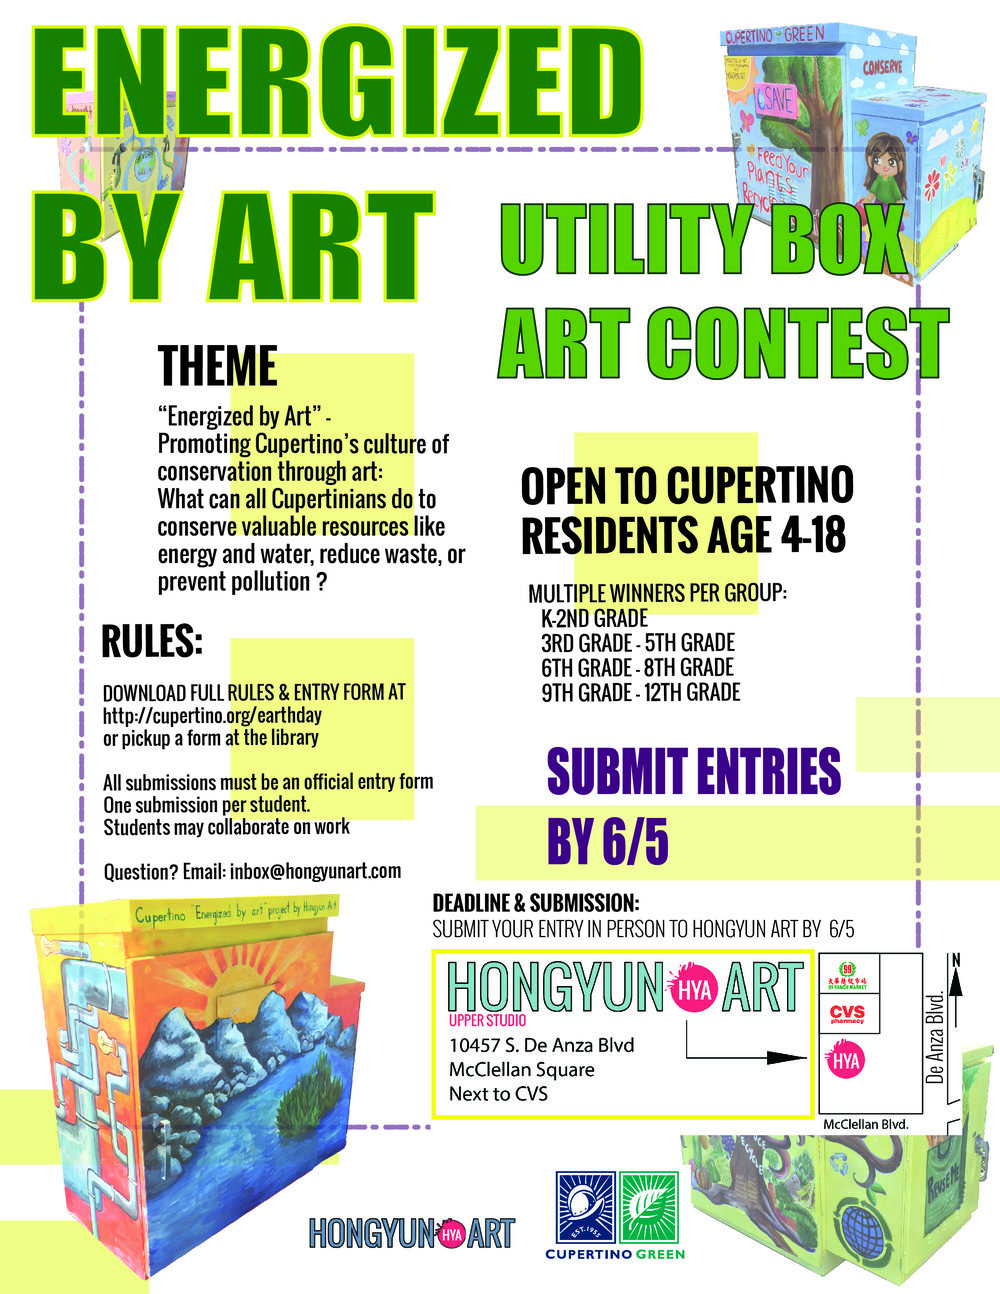 Energized by Art is a project by a partnership between the City of Cupertino and Hongyun Art.  All winner were chosen by the City of Cupertino Fine Arts Commission and Sustainability Coordinators.  The artwork is painted on the utility box by the winning artist with the assistance of Hongyun Art Students and Teachers.